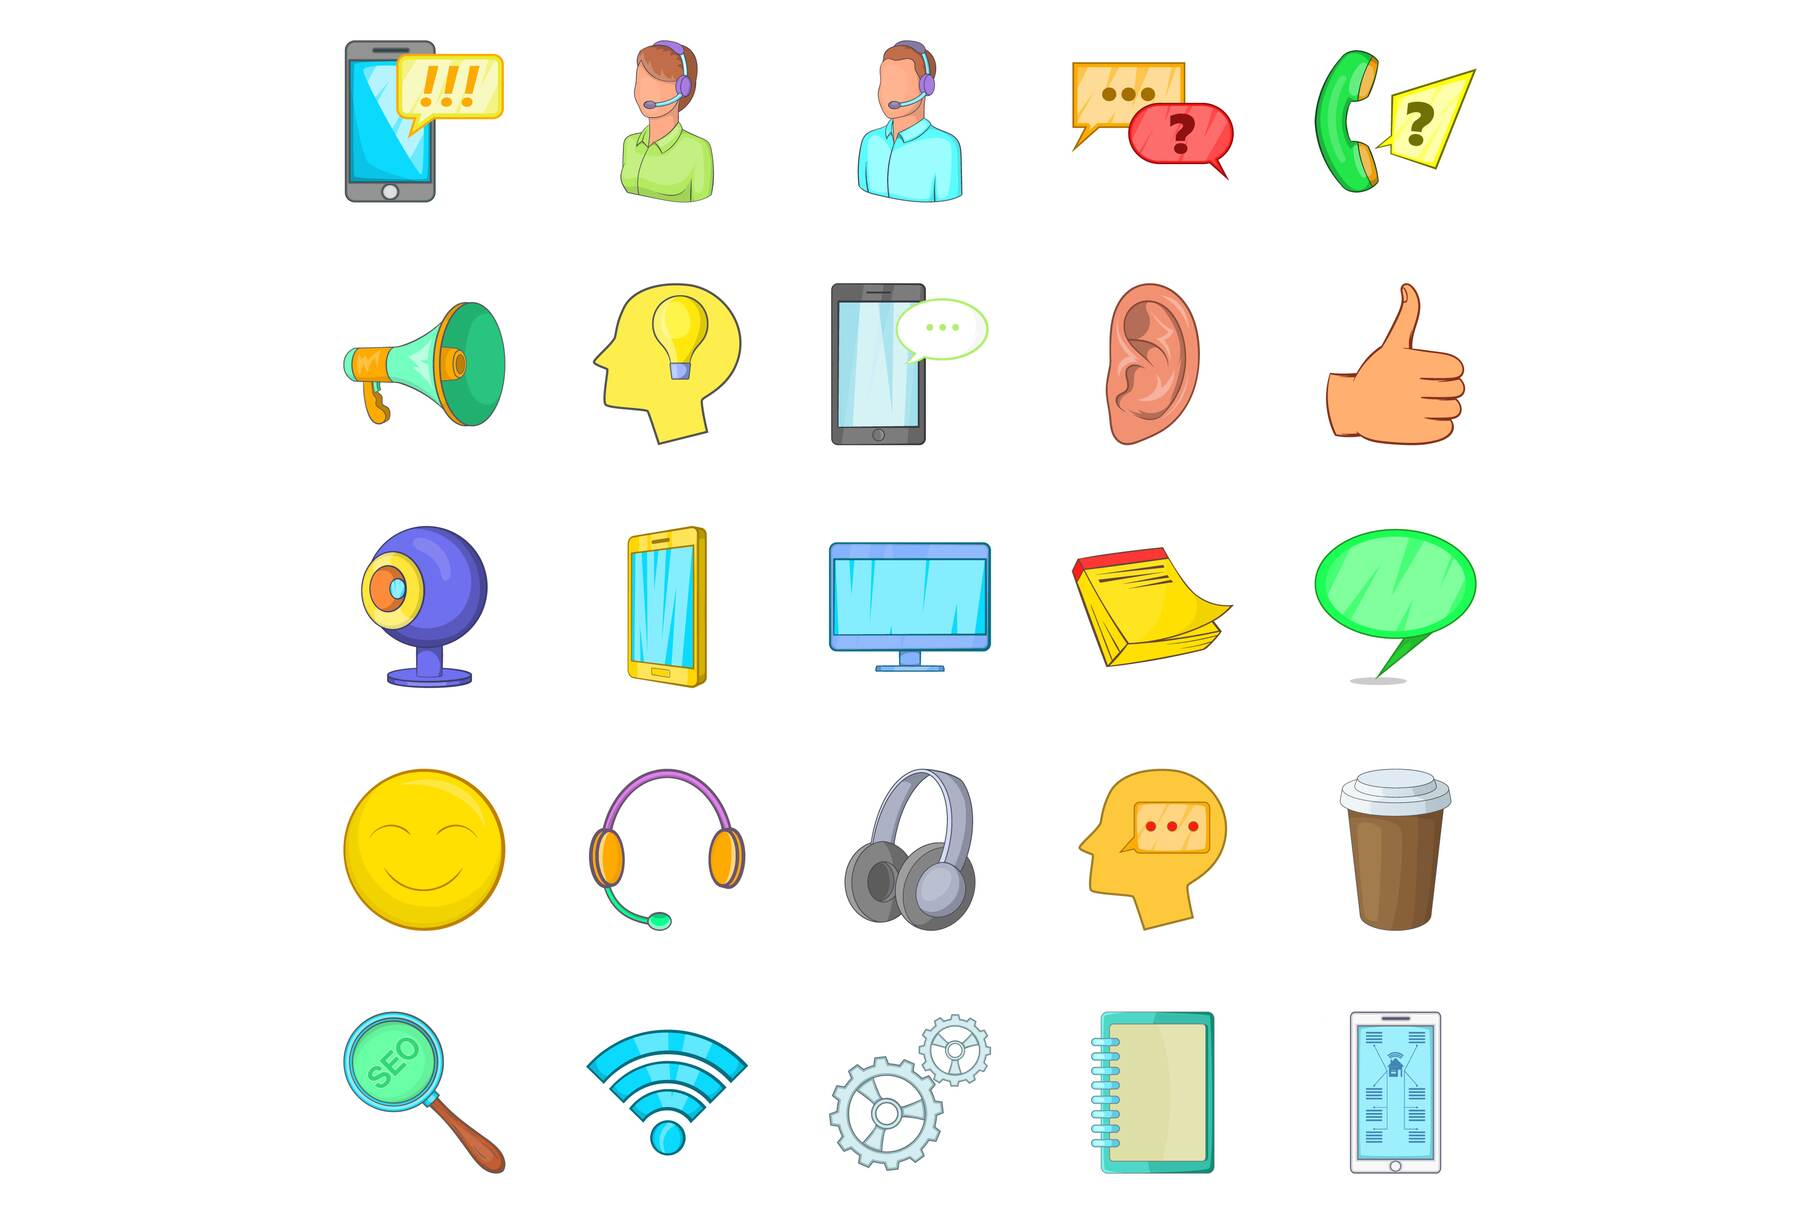 Cell phone icons set, cartoon style example image 1